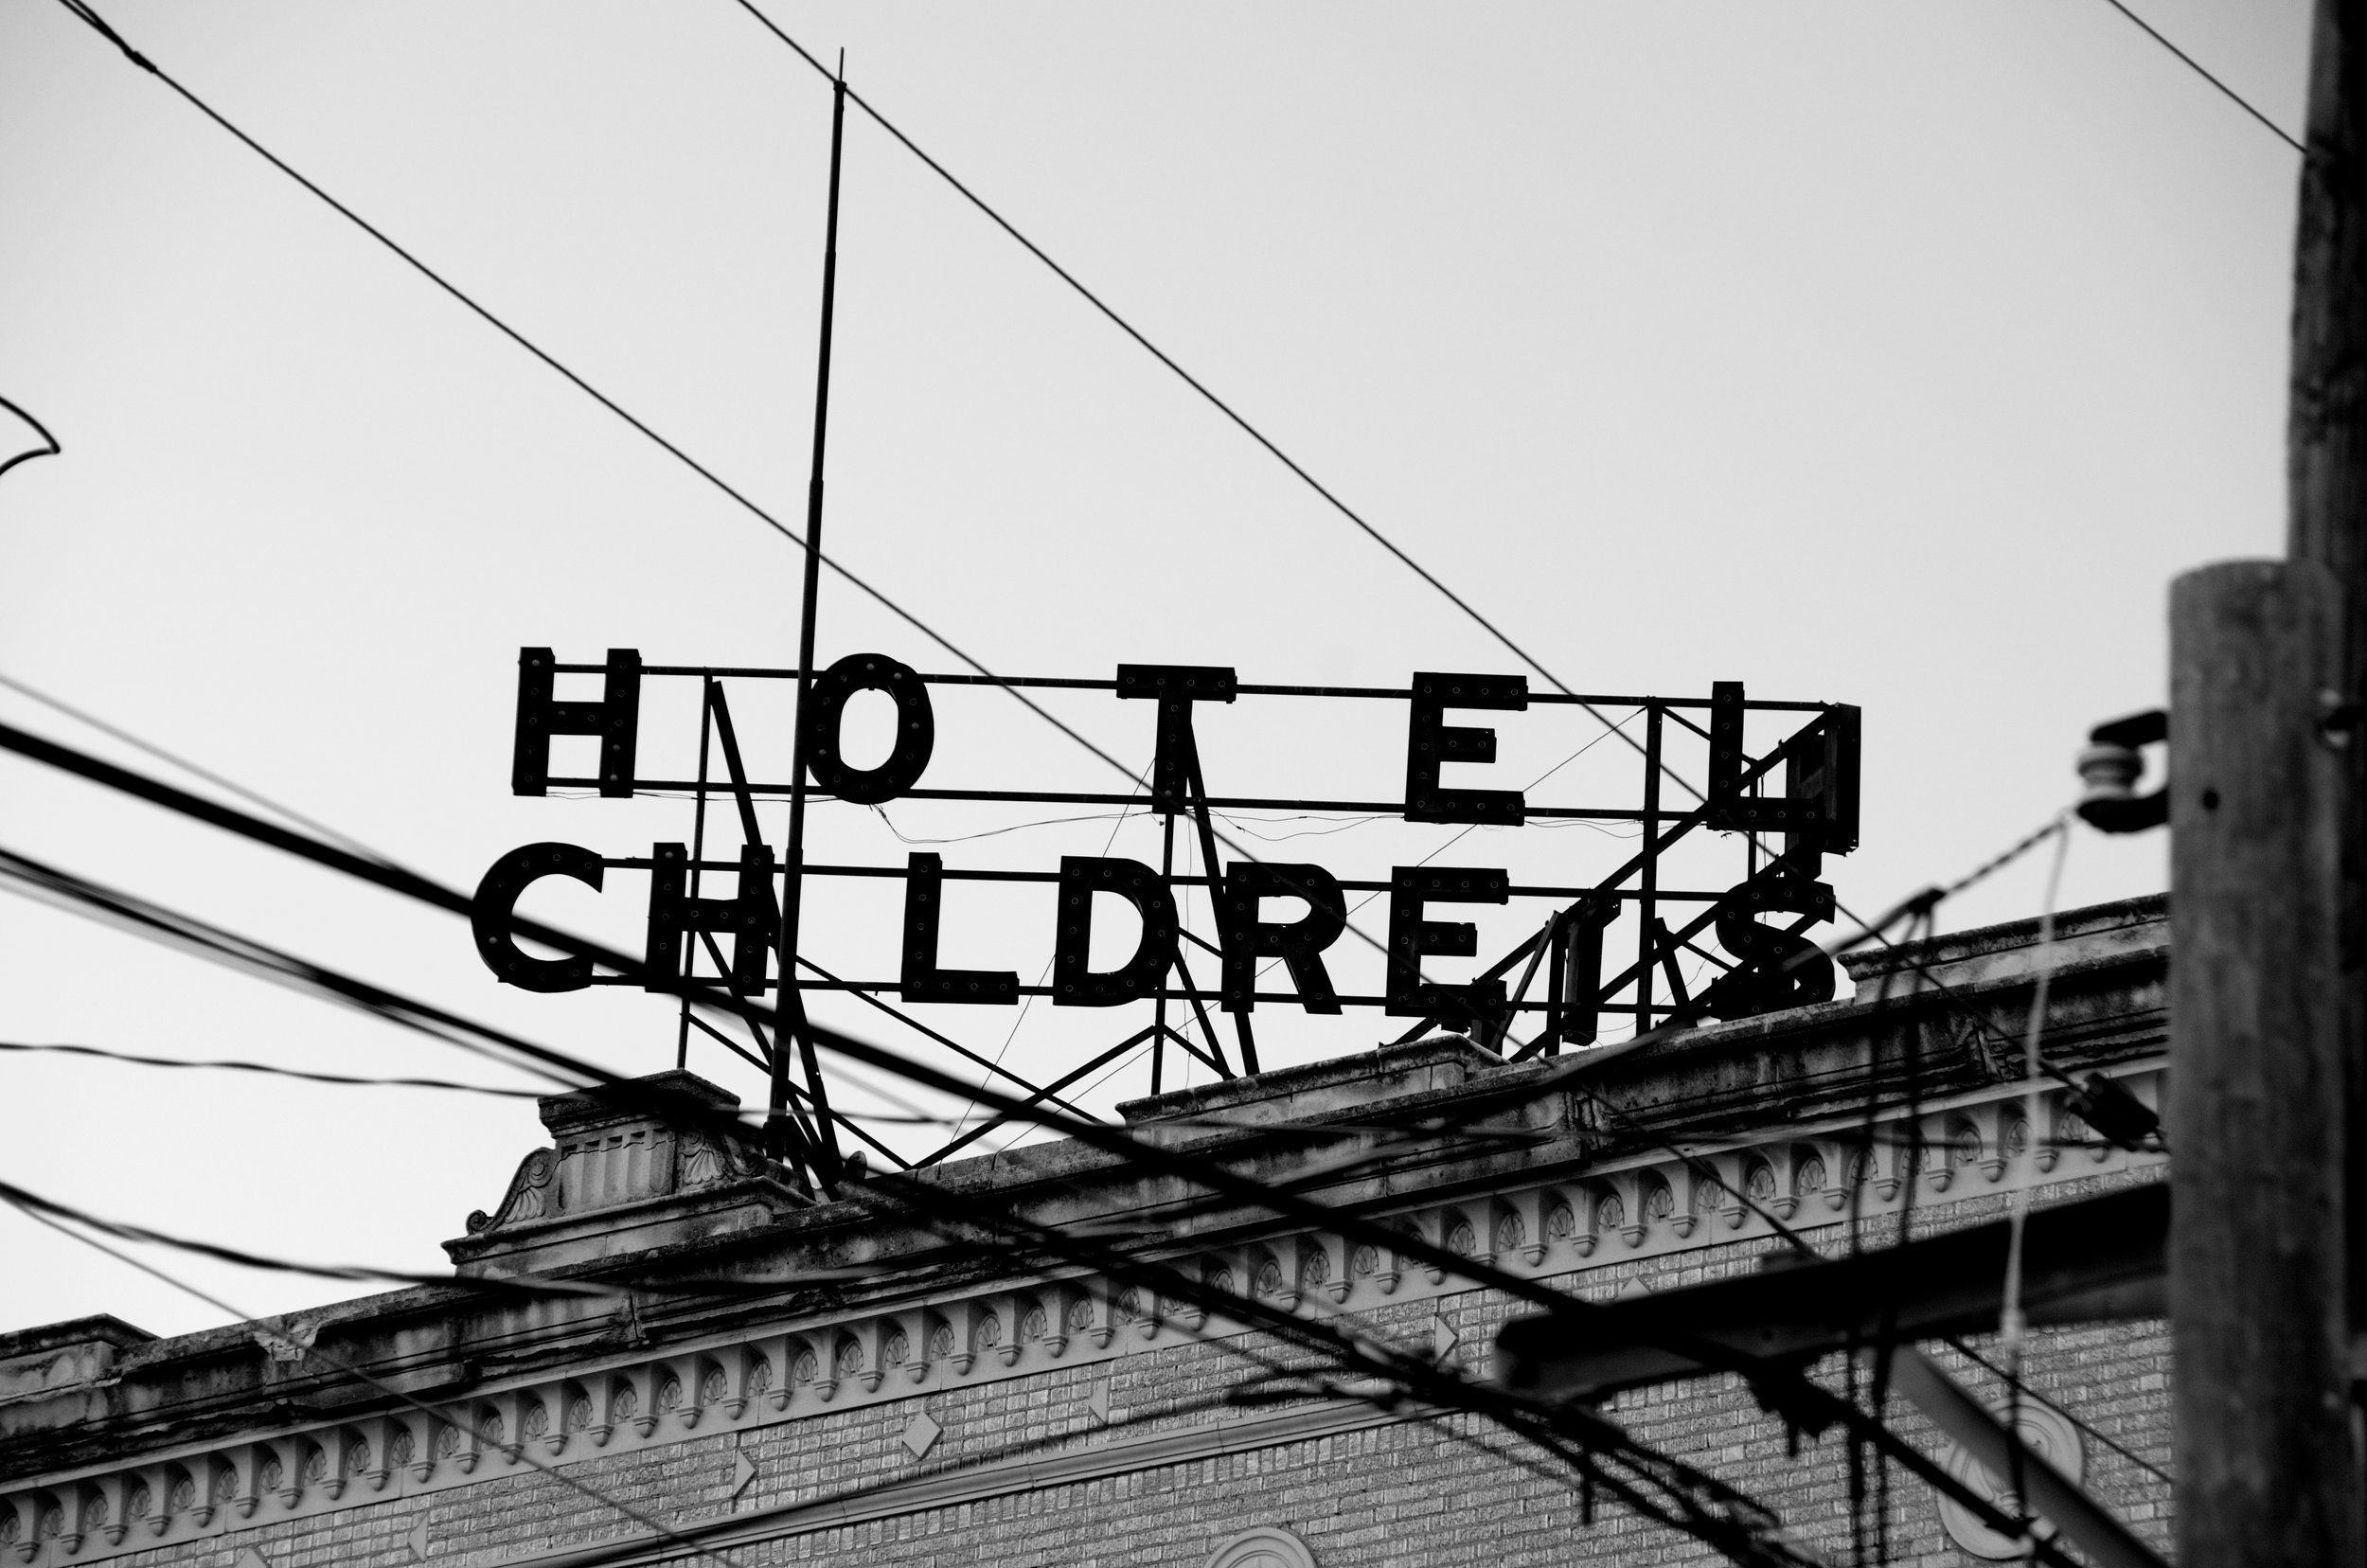 The abandoned Hotel Childress